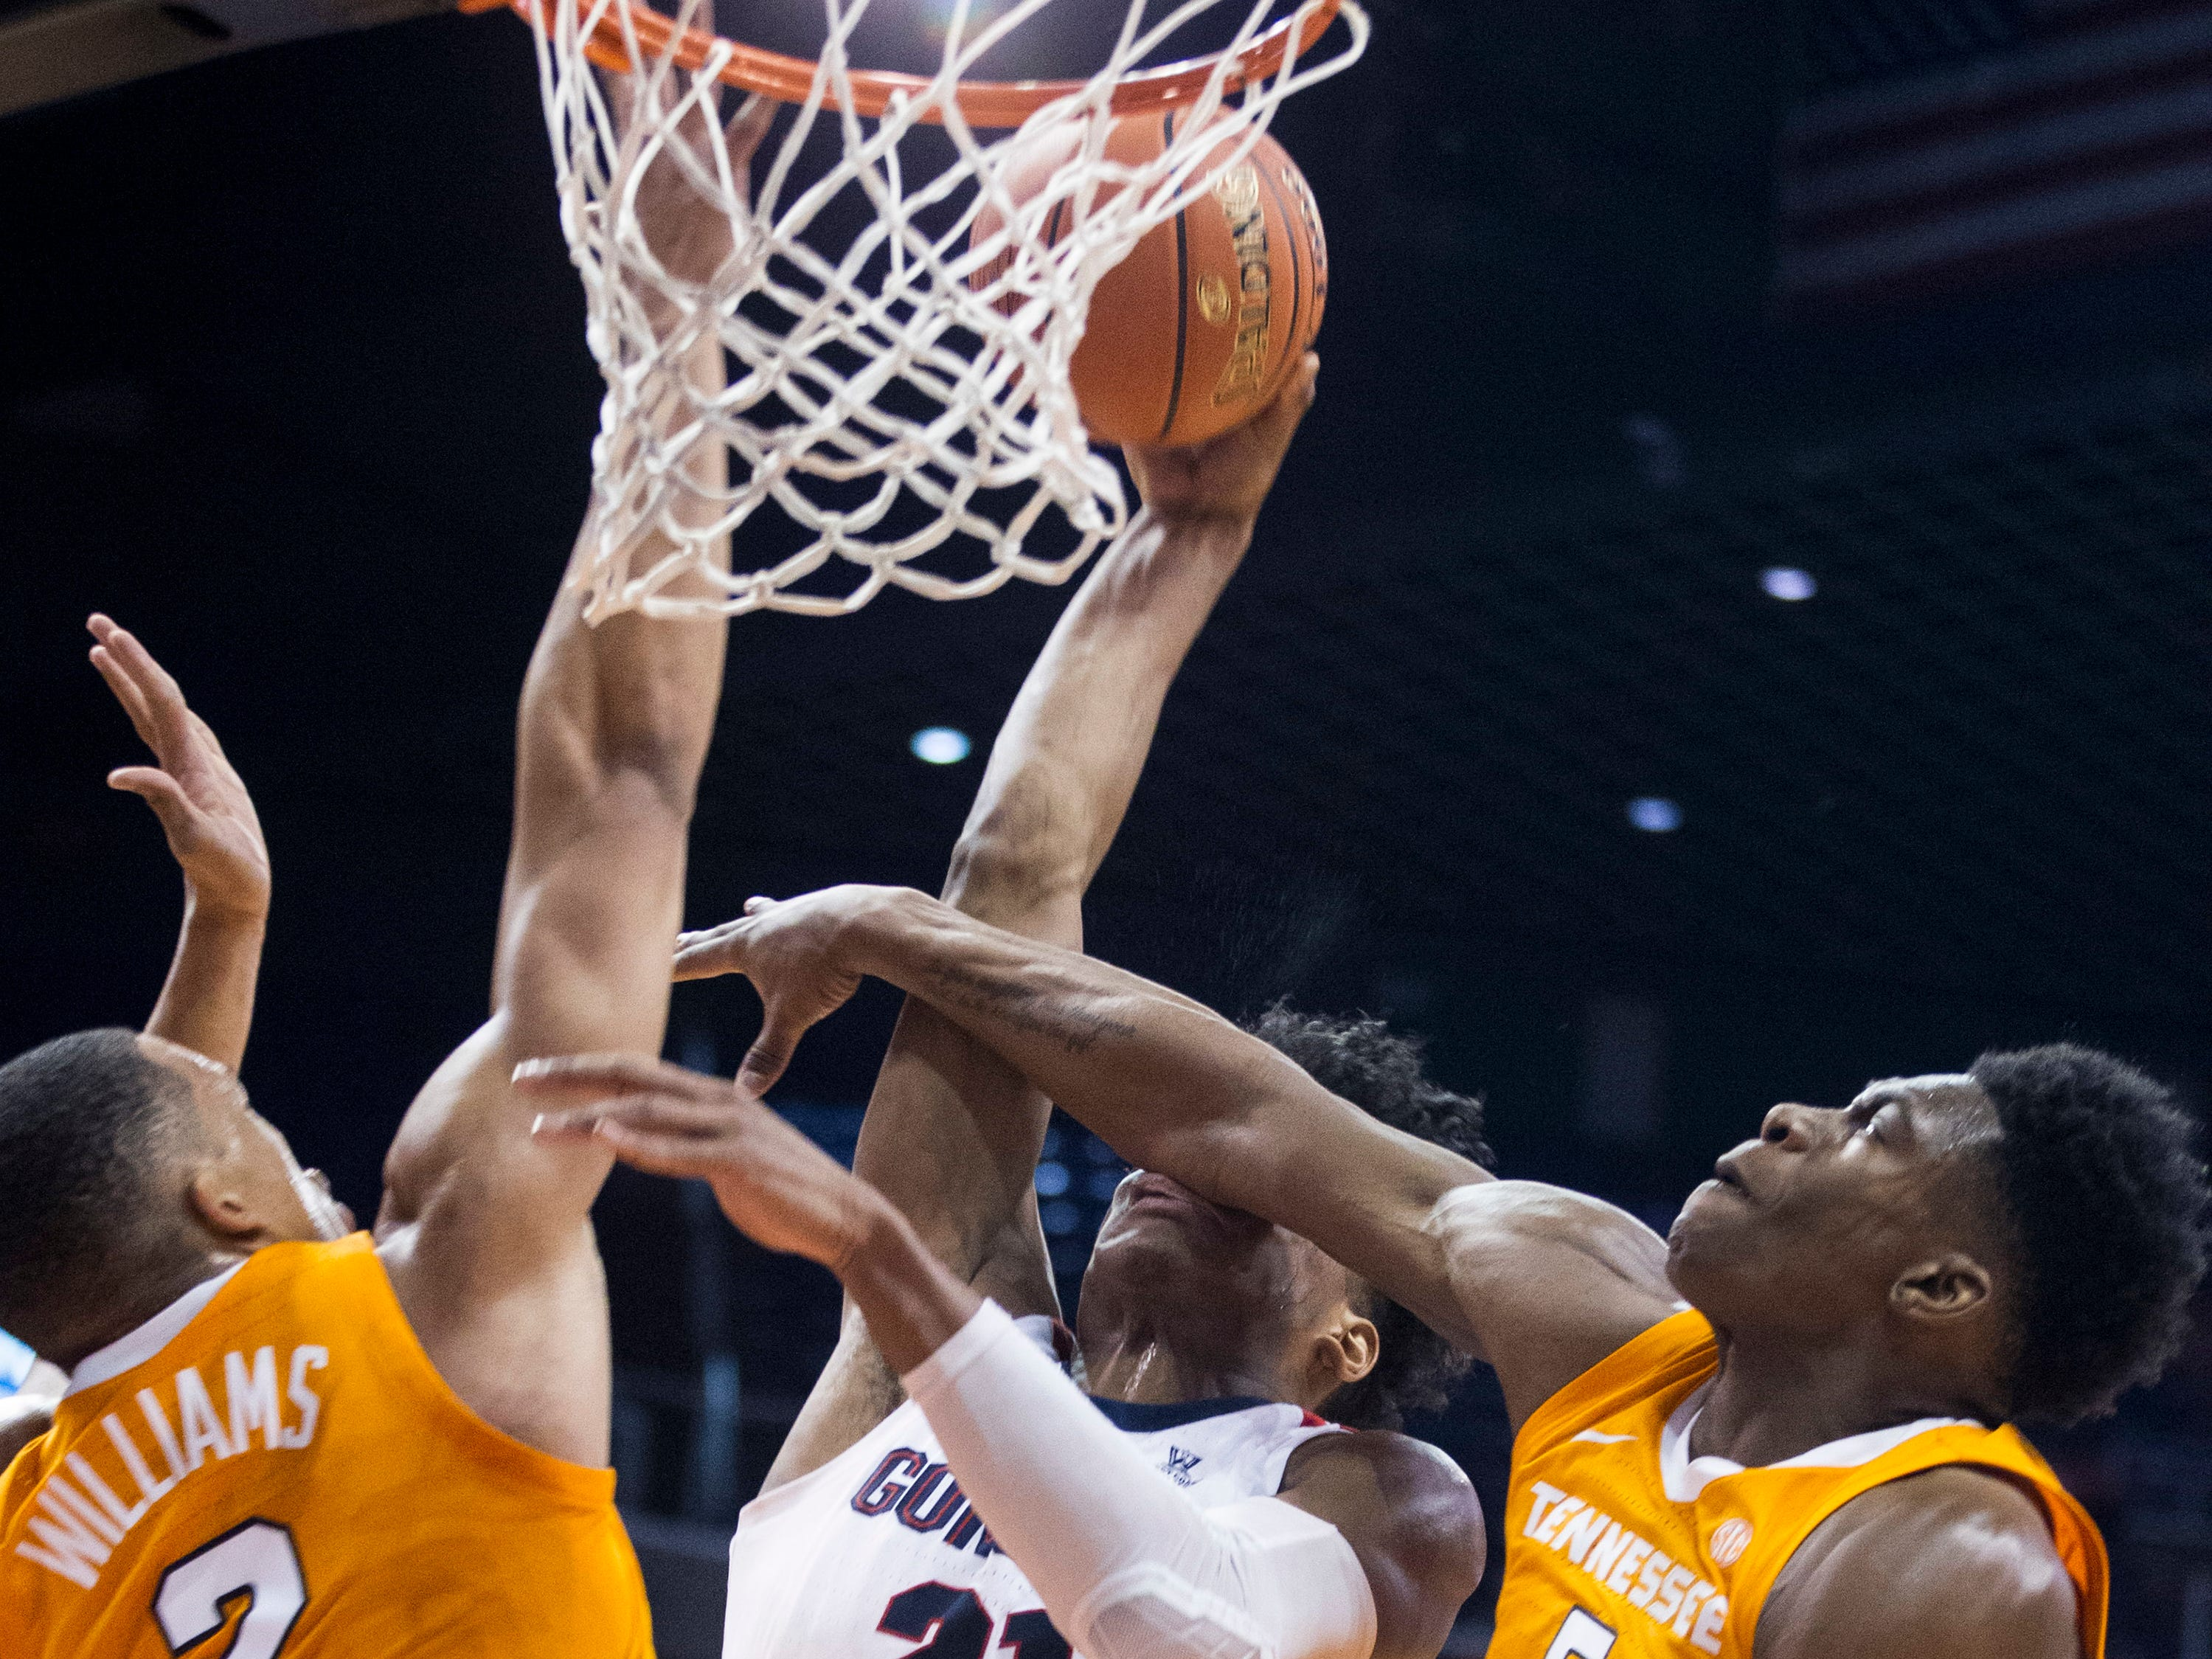 Gonzaga's Rui Hachimura (21) is fouled by Tennessee's Admiral Schofield (5) and Grant Williams (2) during the first half of an NCAA college basketball game Sunday, Dec. 9, 2018, in Phoenix.